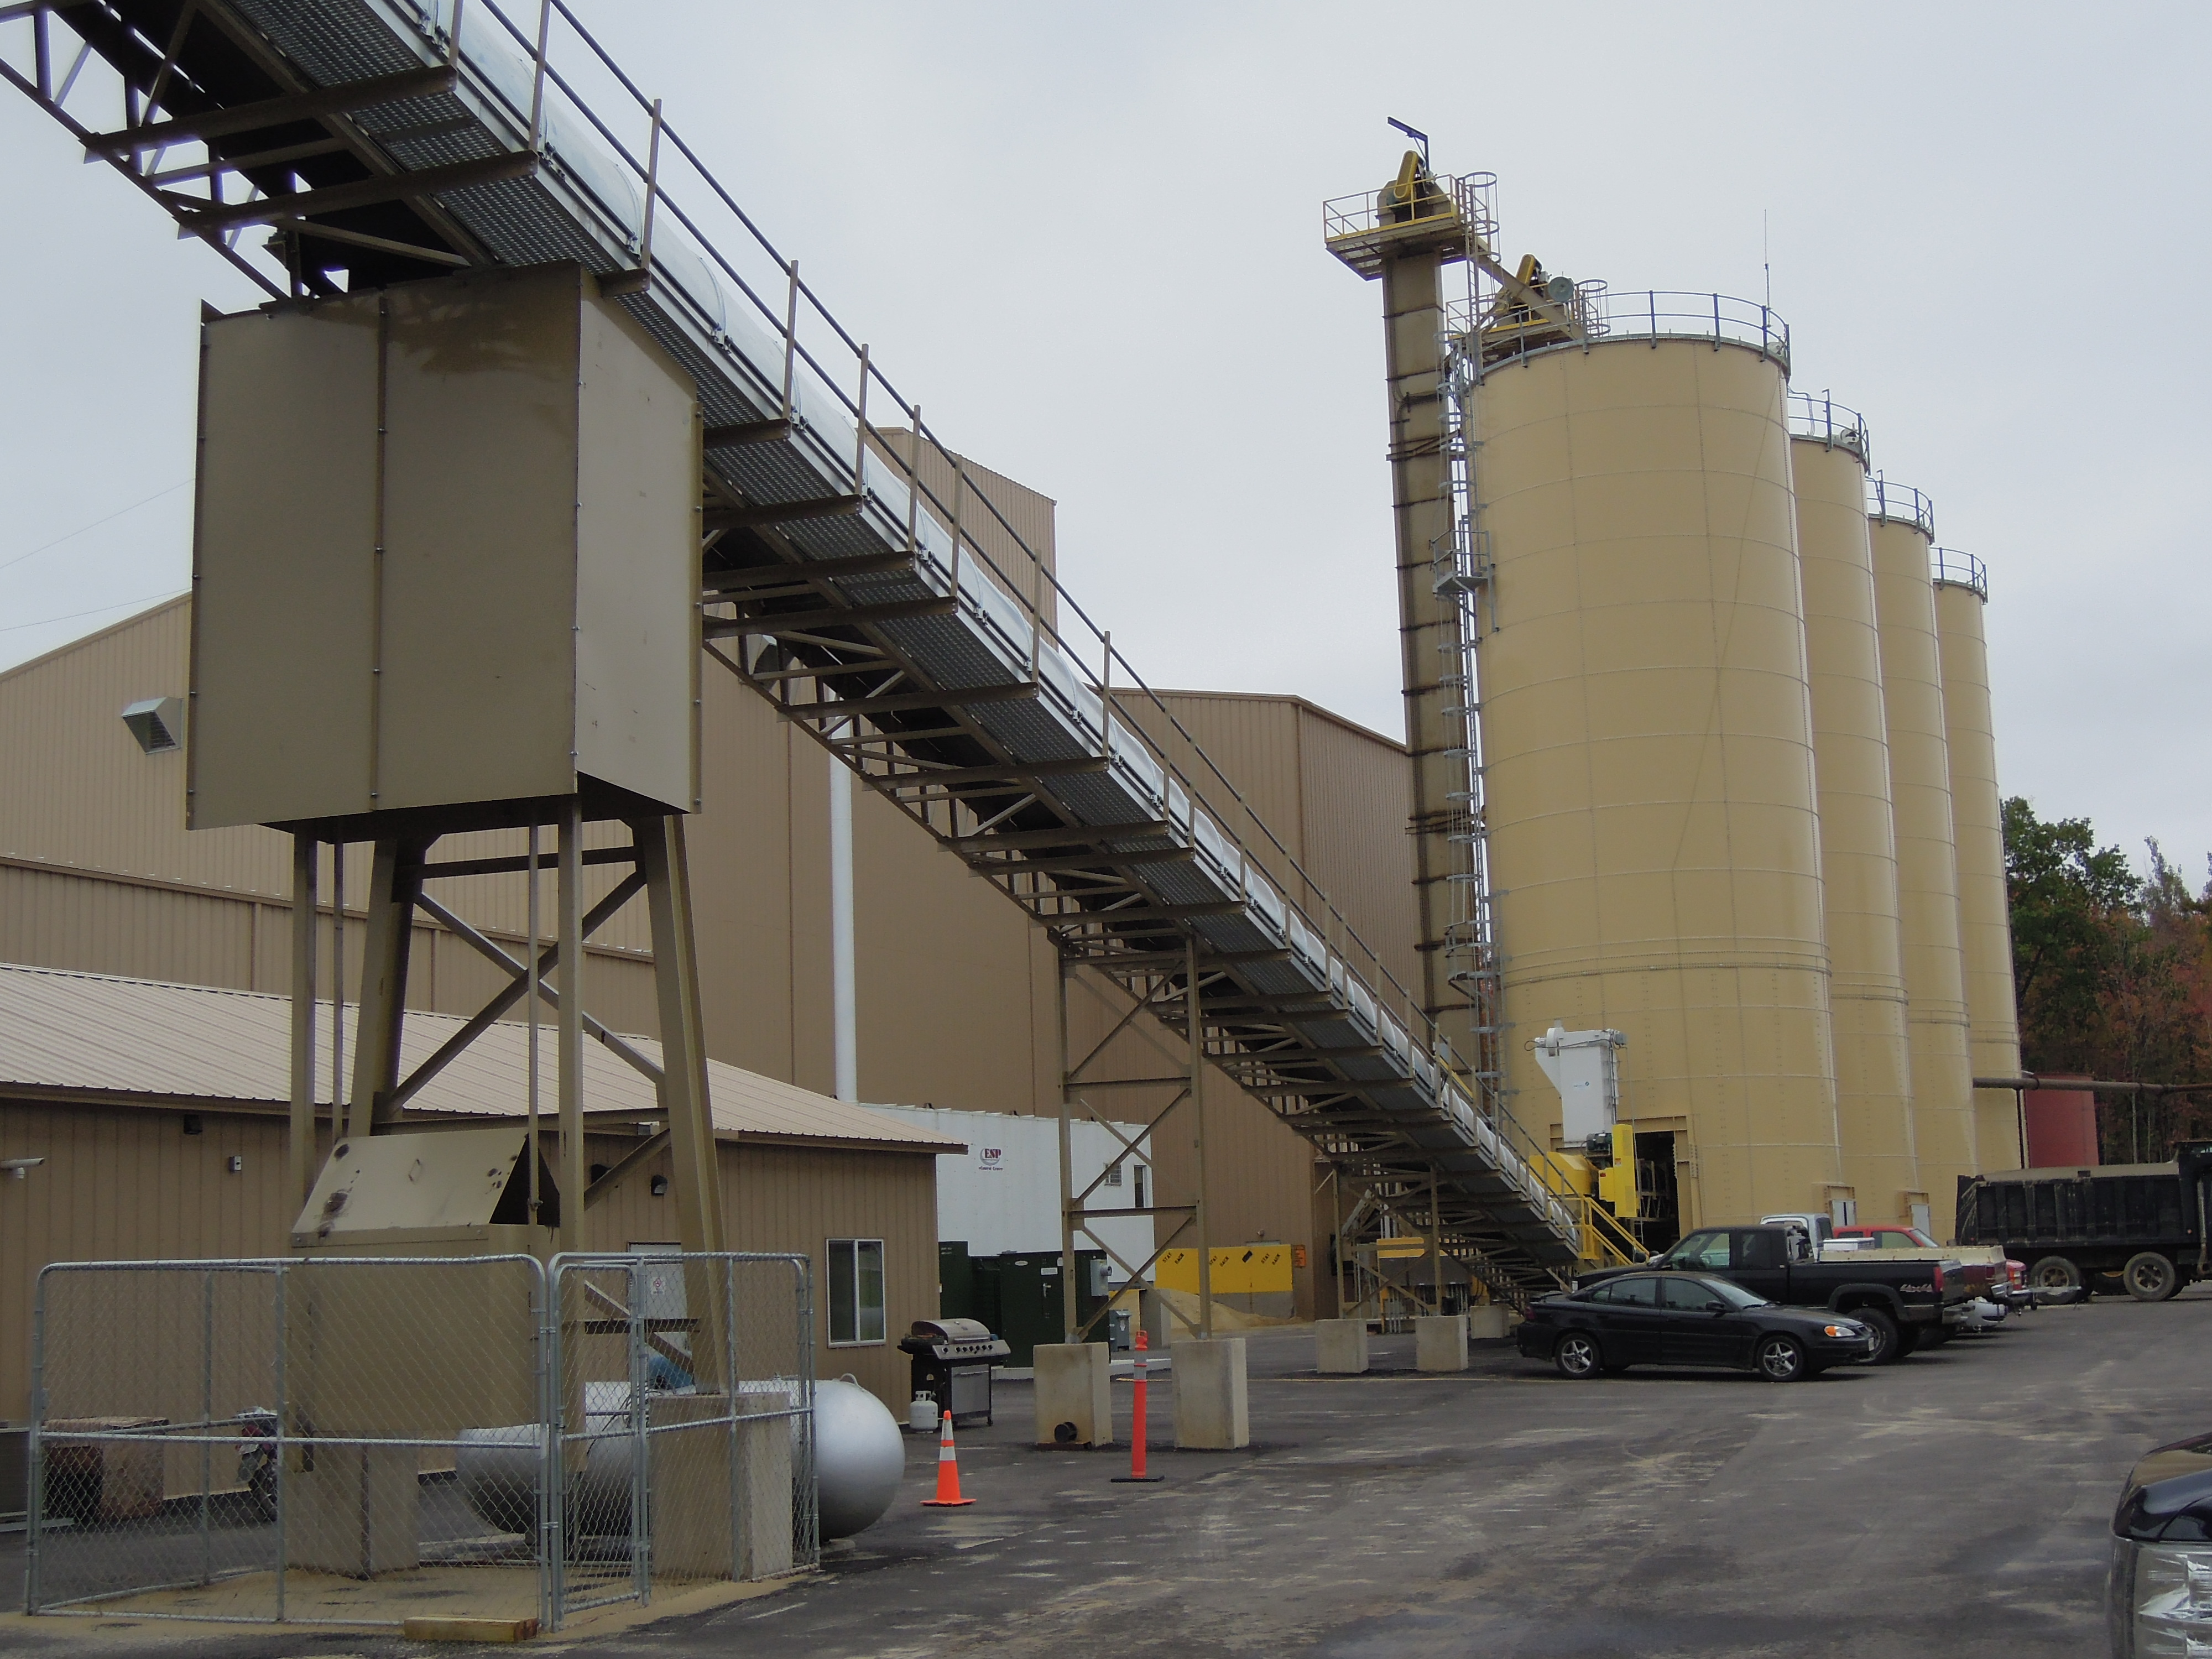 Frac Sand Producer In Wisconsin Faces Bankruptcy As Industry